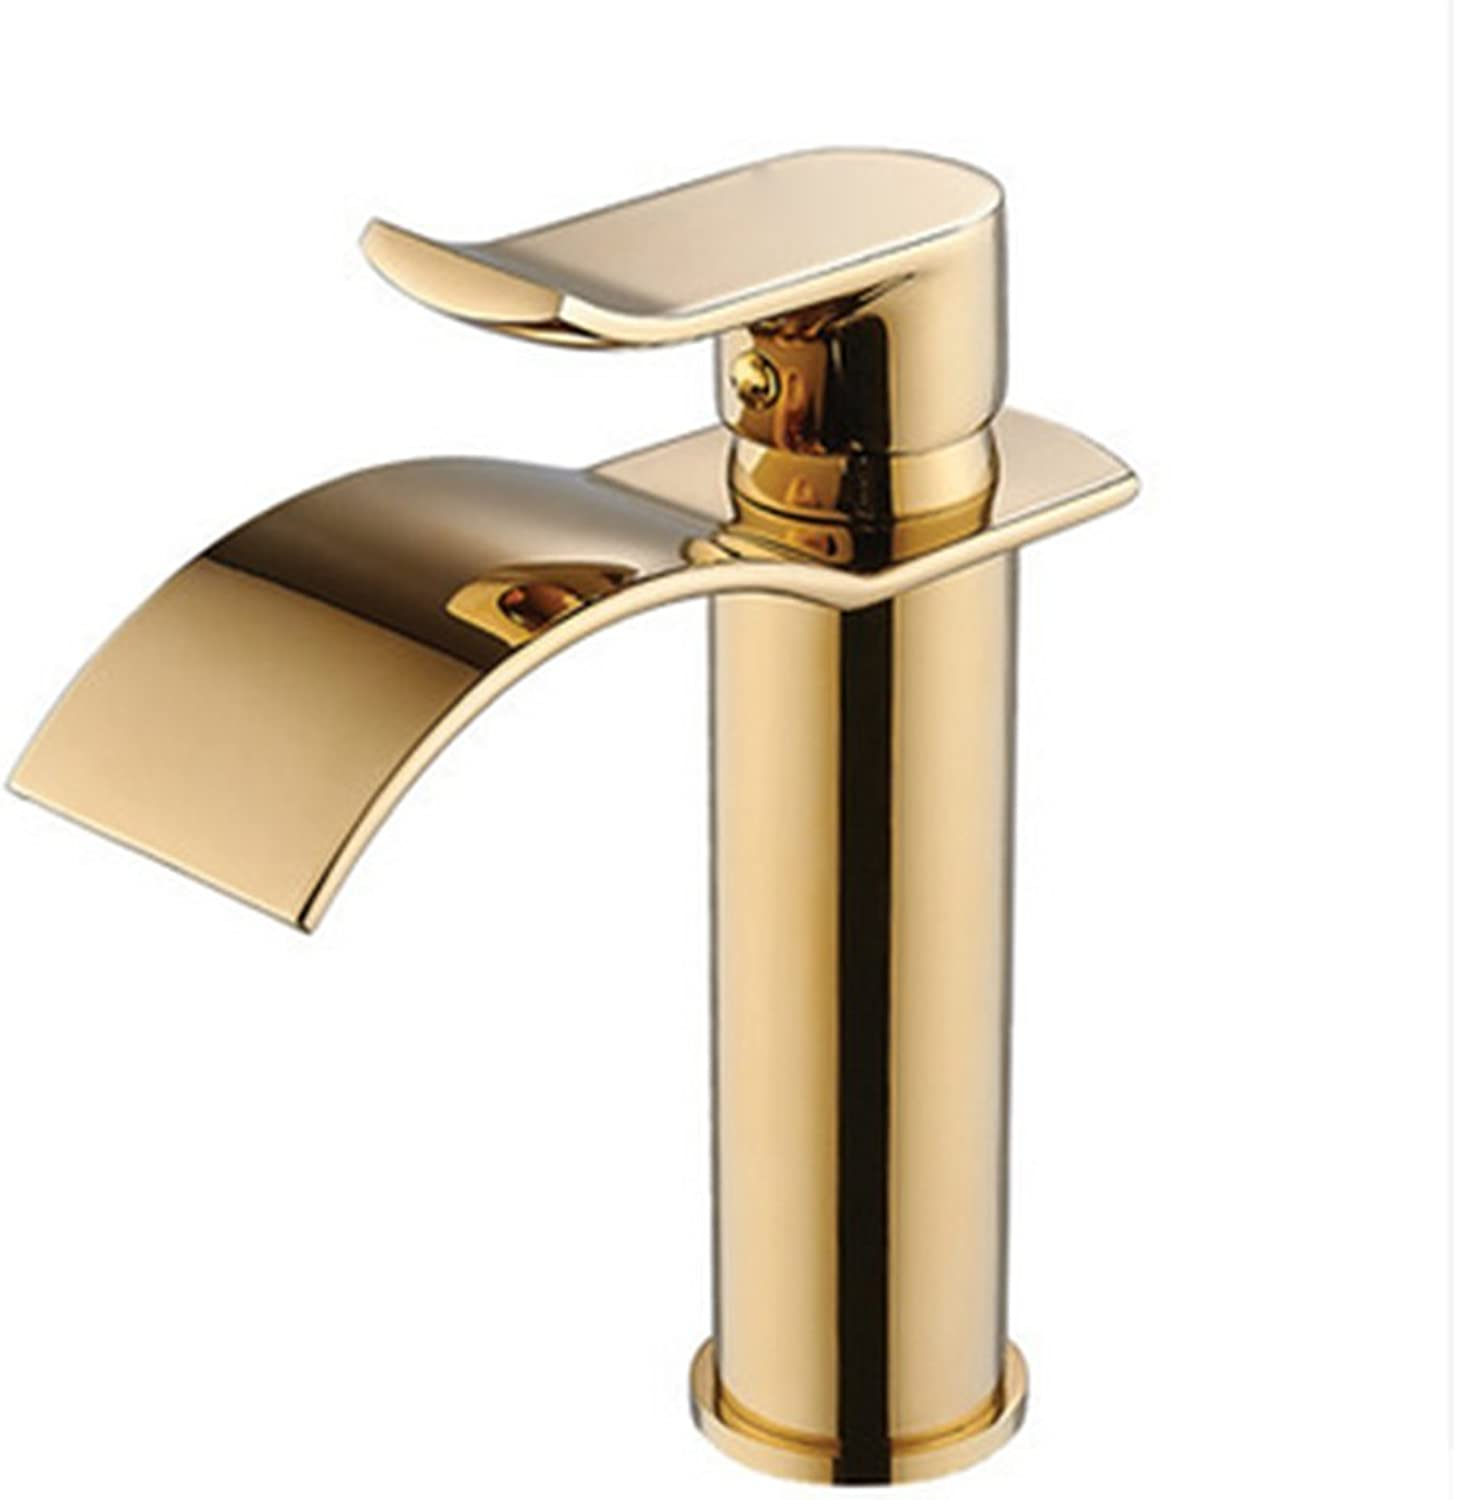 All Copper hot and Cold Basin Faucet, one-Hole Bathroom golden Waterfall Faucet-A